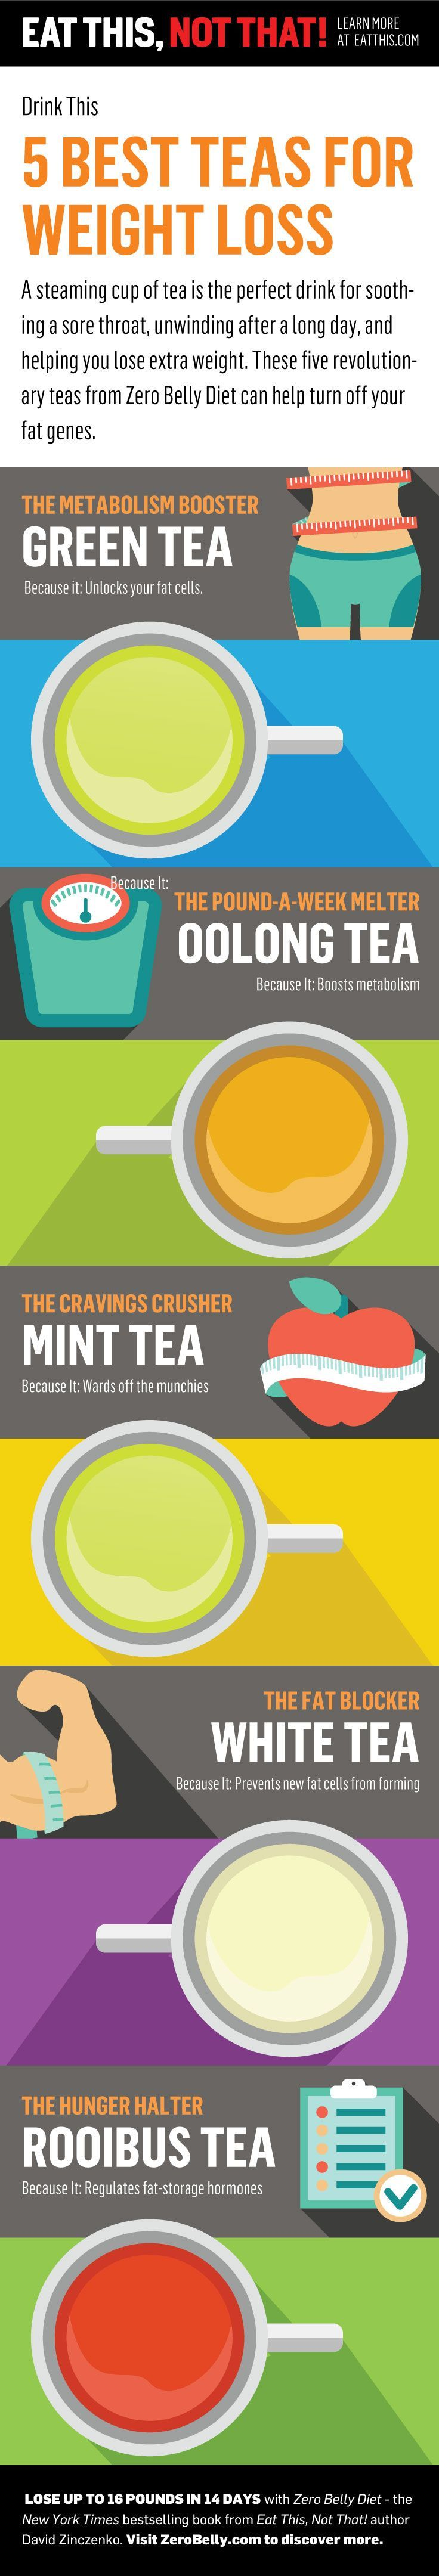 Crank up the heat and sip yourself slim if you're you're serious about banishing your belly fat. Get to know these 5 teas that melt fat! | Health Infographic